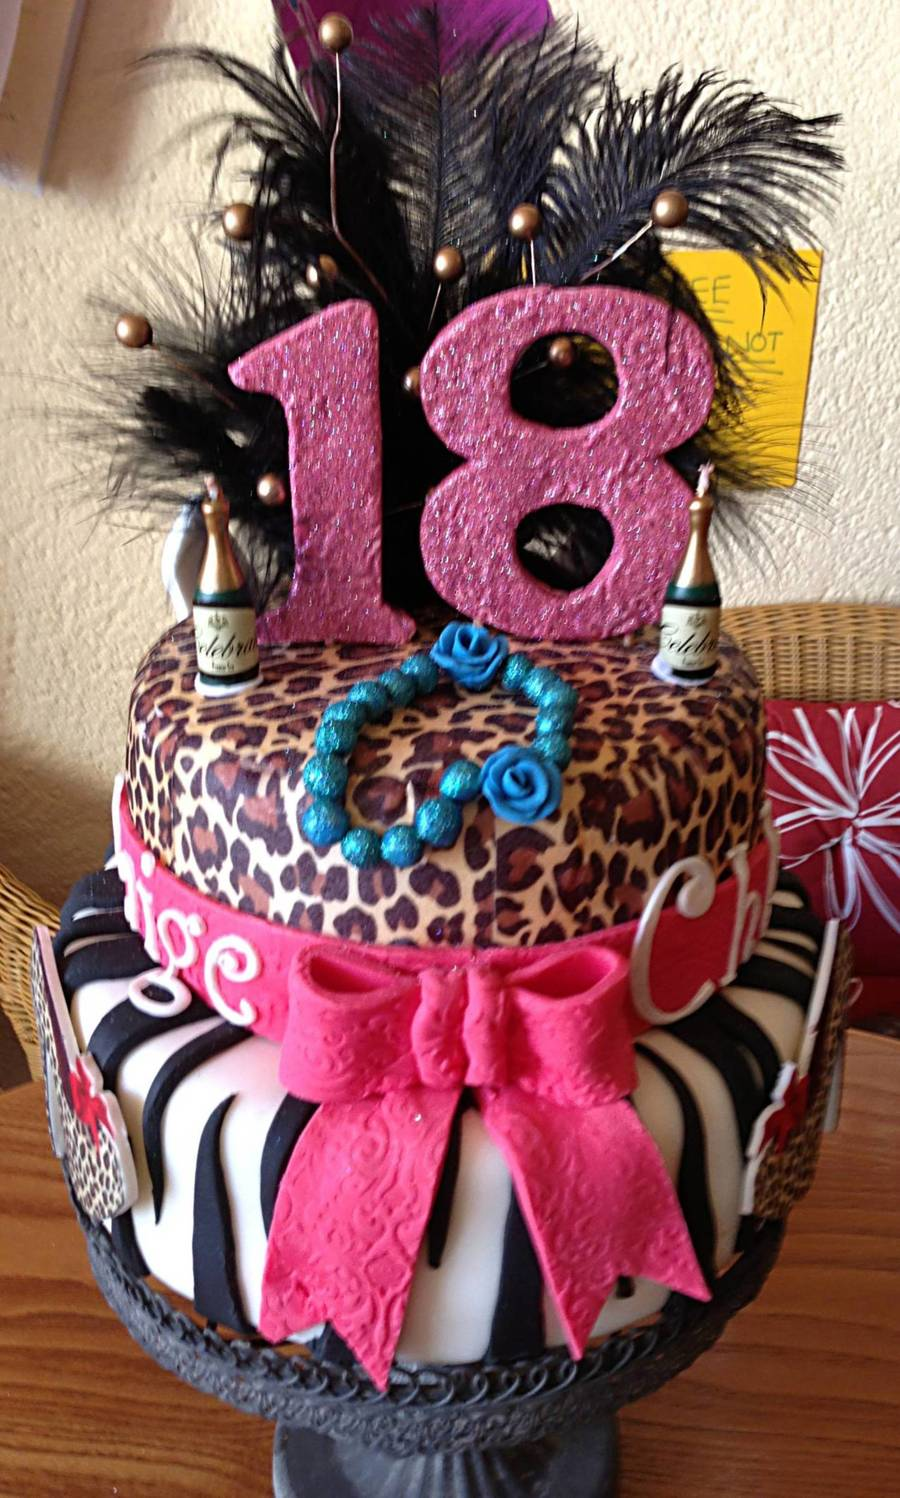 18th Birthday Cake For Twin Girls Vanilla Bottom Tier And Chocolate